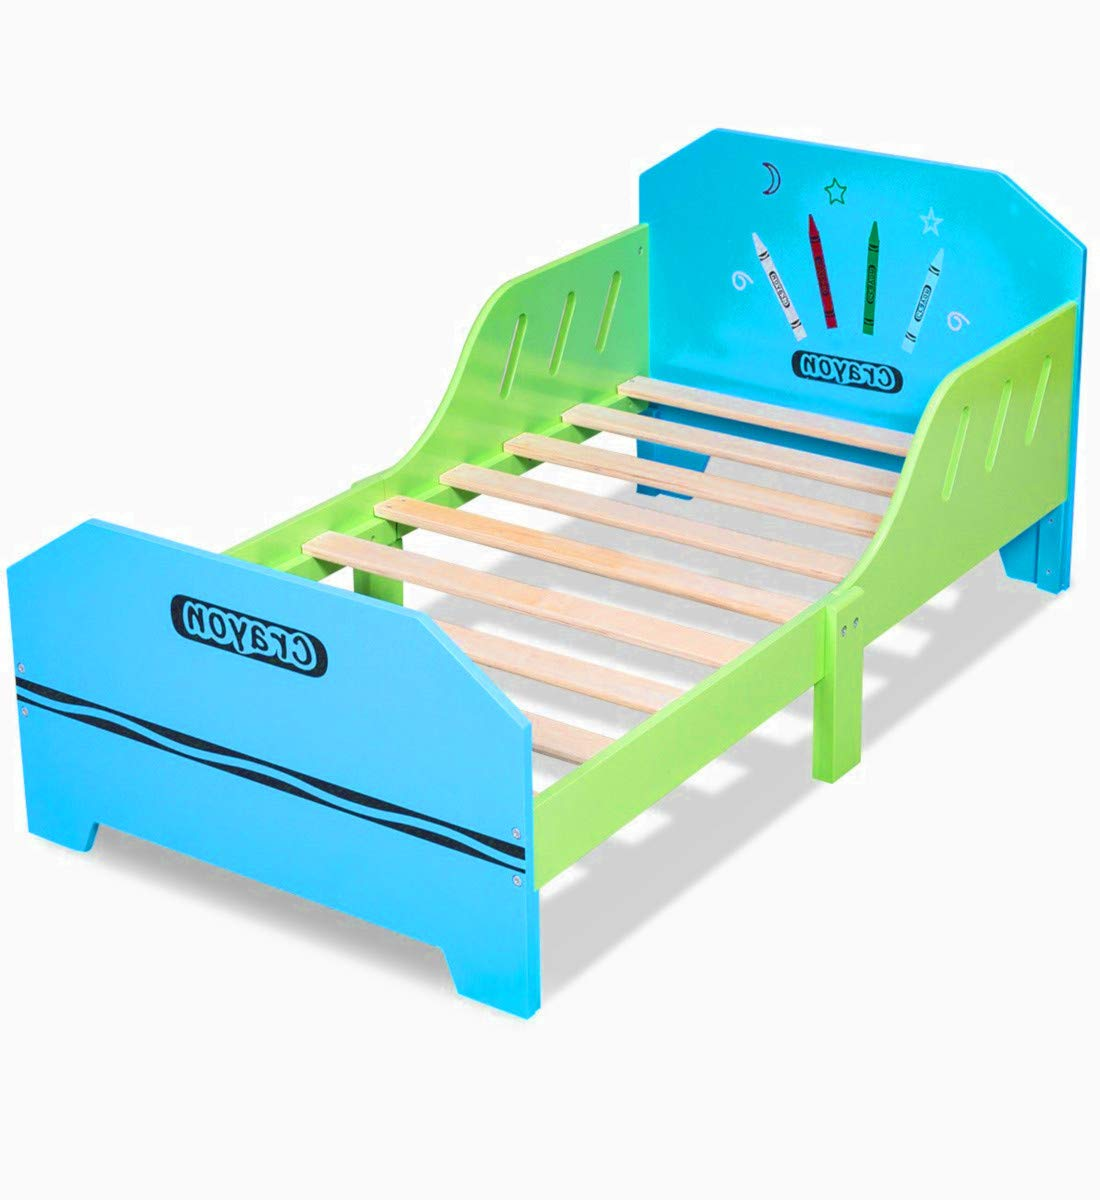 Colored Bed Frame for Kids Wooden Frame Toddler Low Rail Large Decor Room Boys Girls Bed & Ebook by AllTim3Shopping.